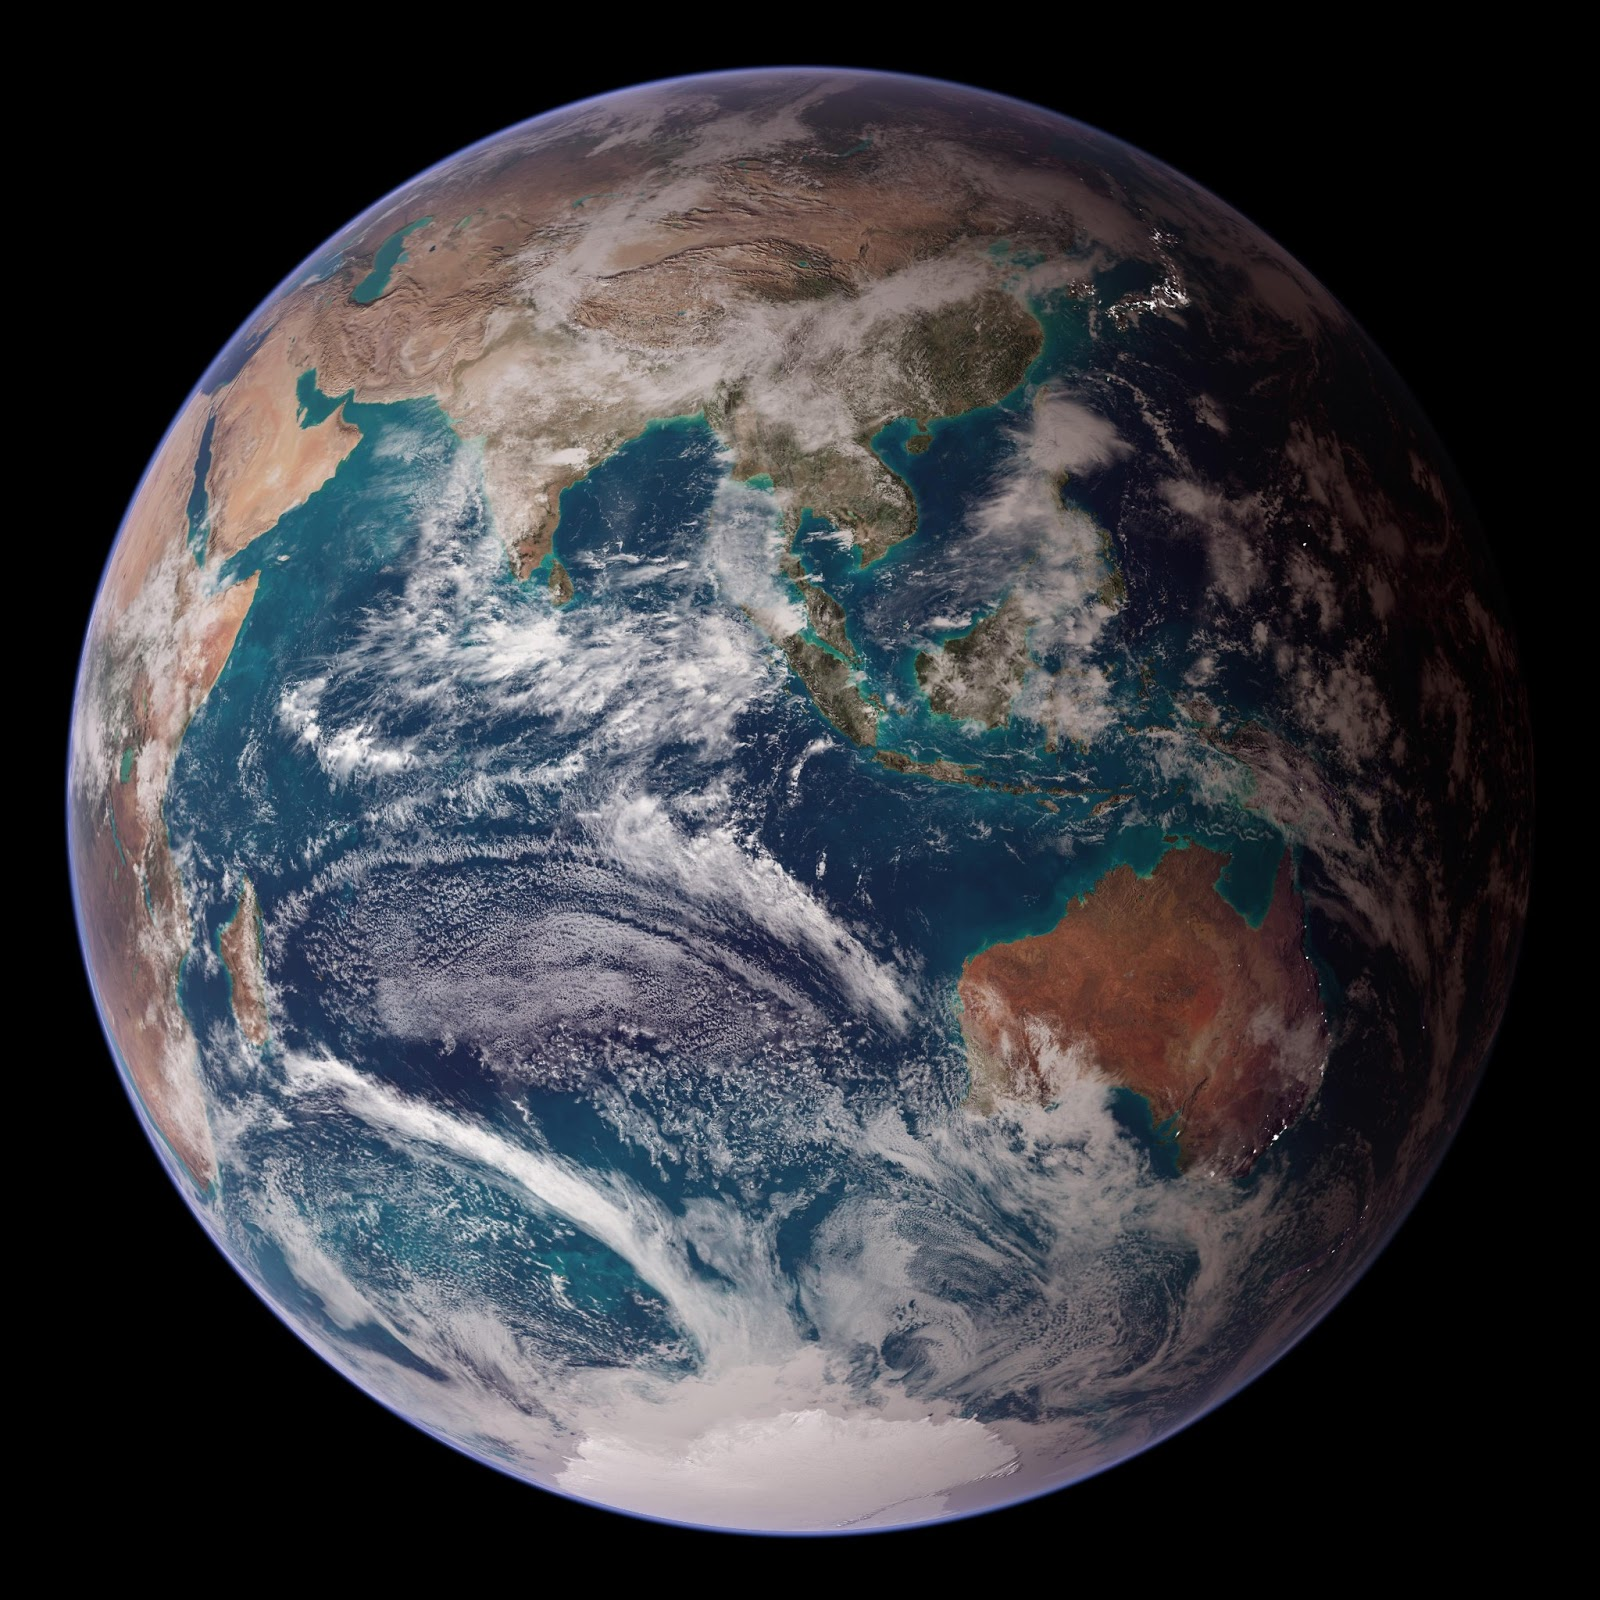 Desktop Wallpaper Earth From Space: 30 Gorgeous HD Wallpapers Of Planet Earth